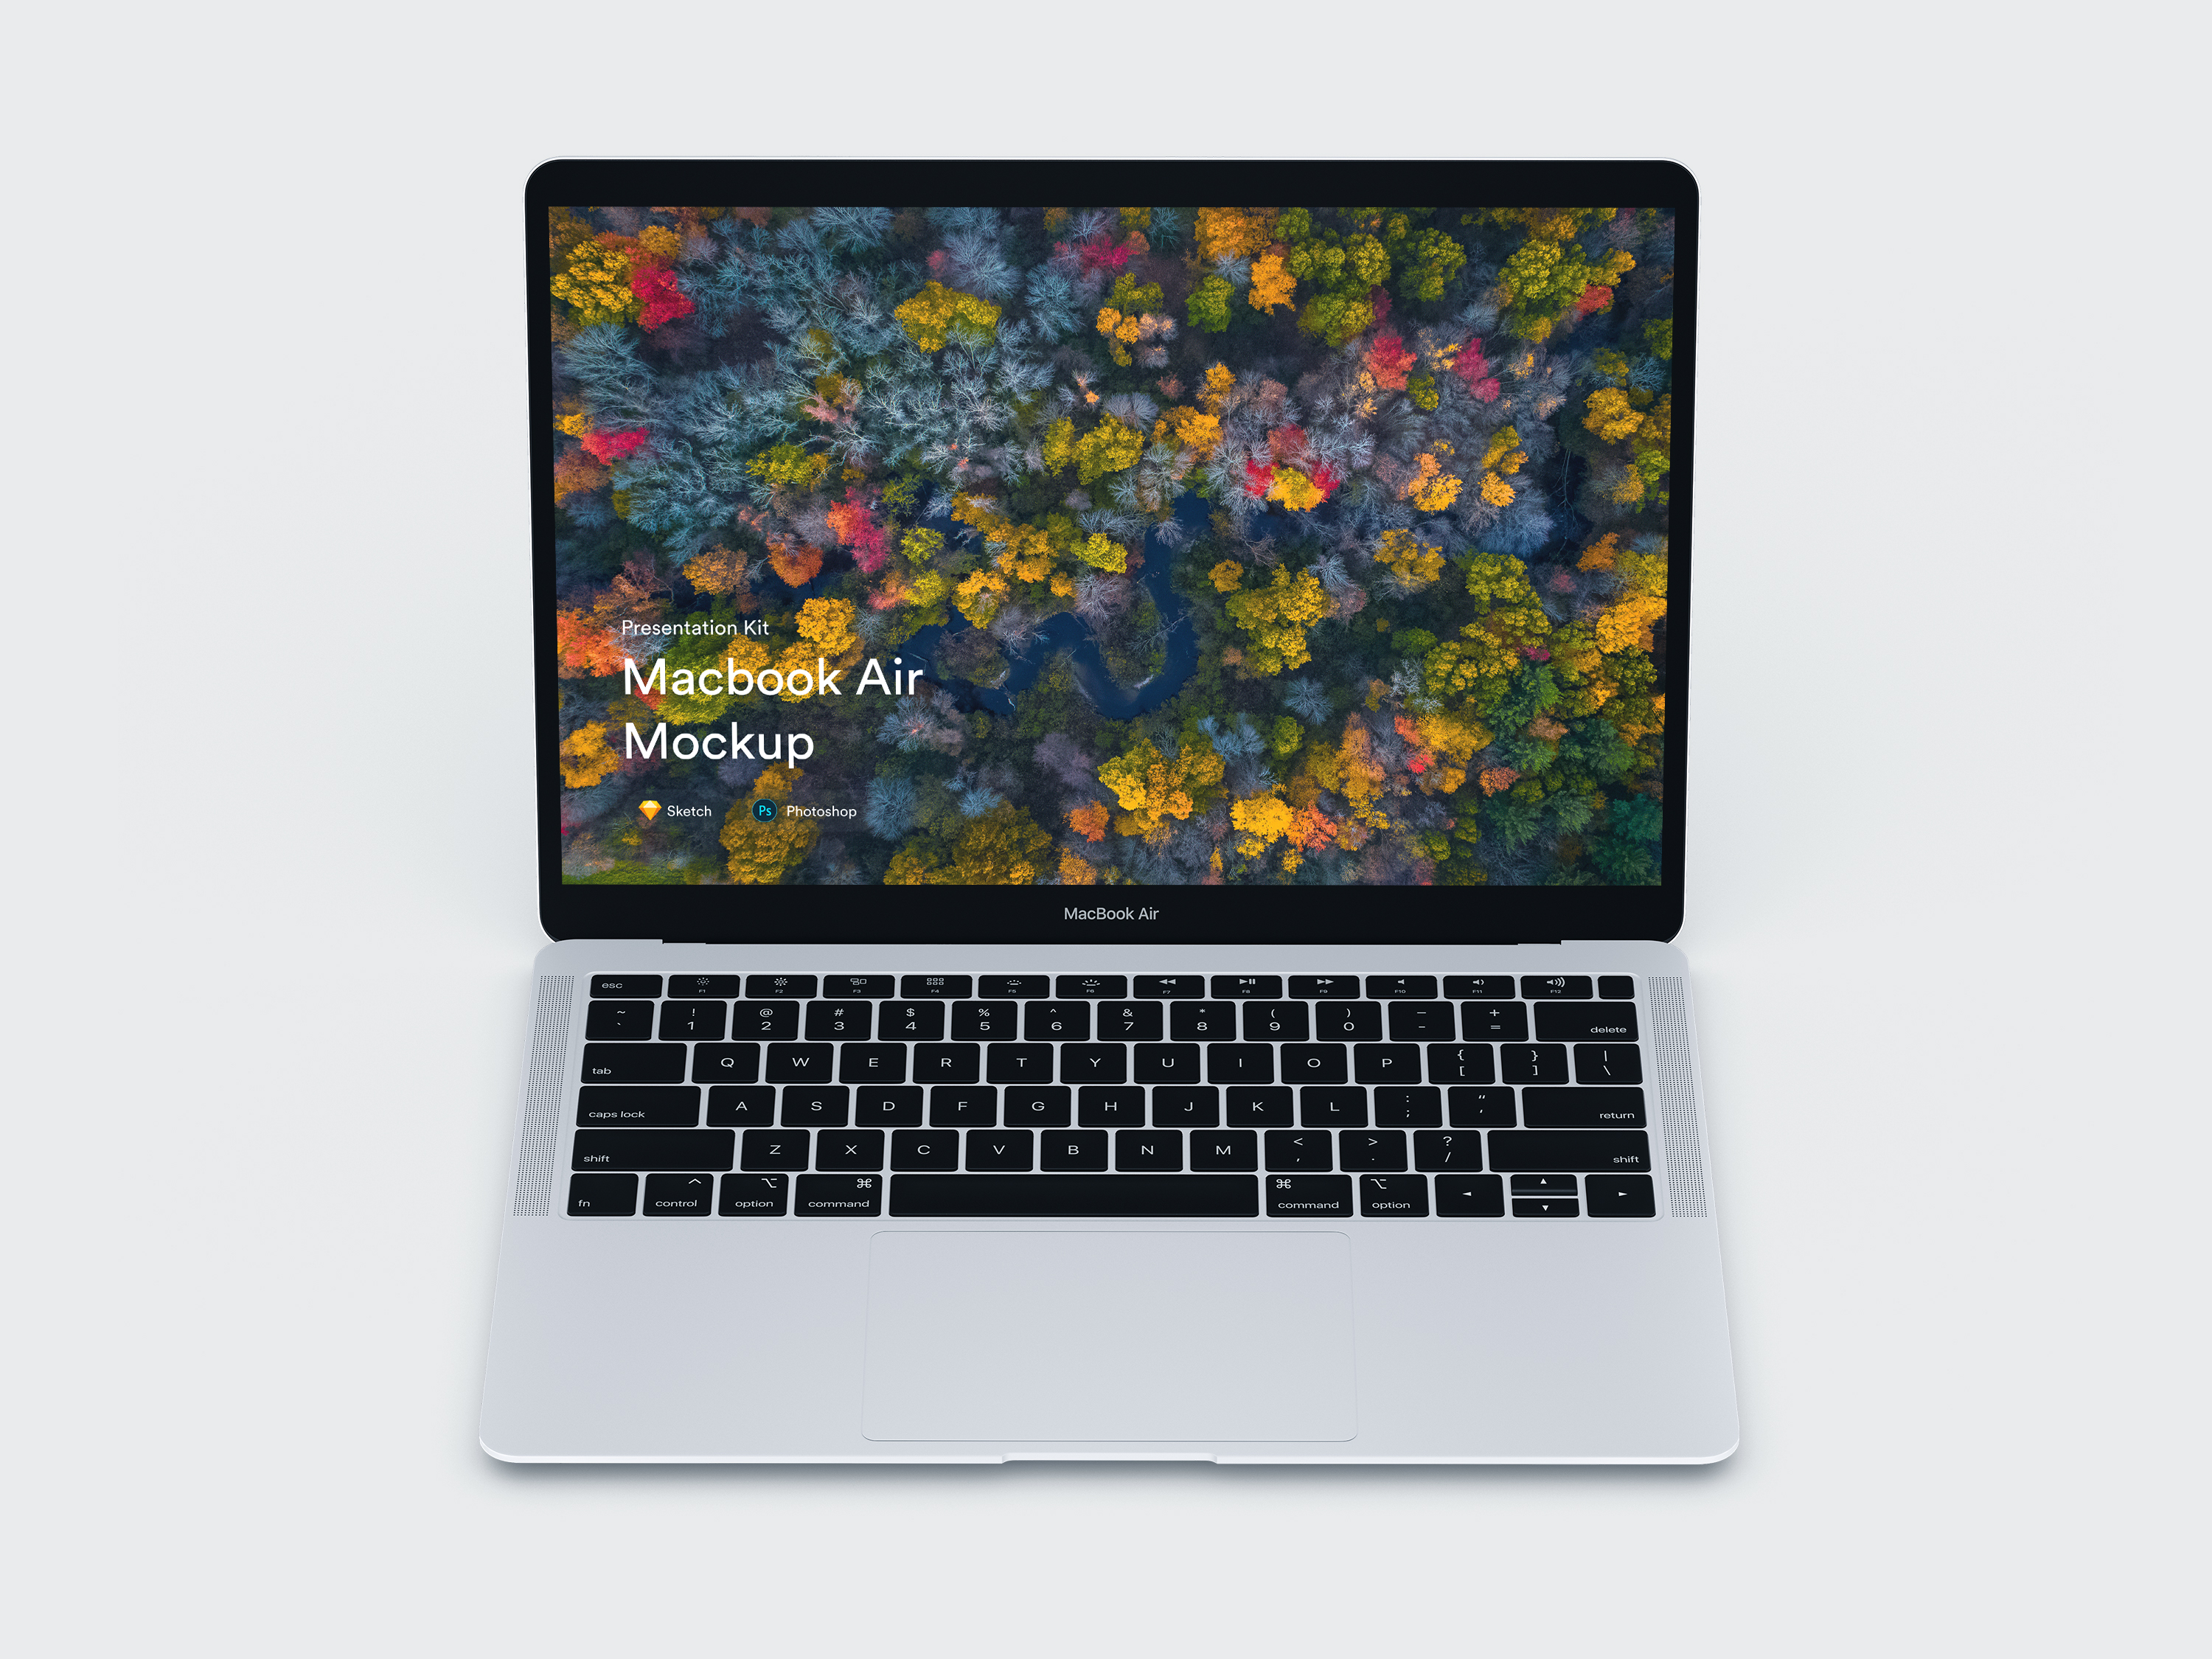 Download MacBook Air Mockups for Sketch and Photoshop